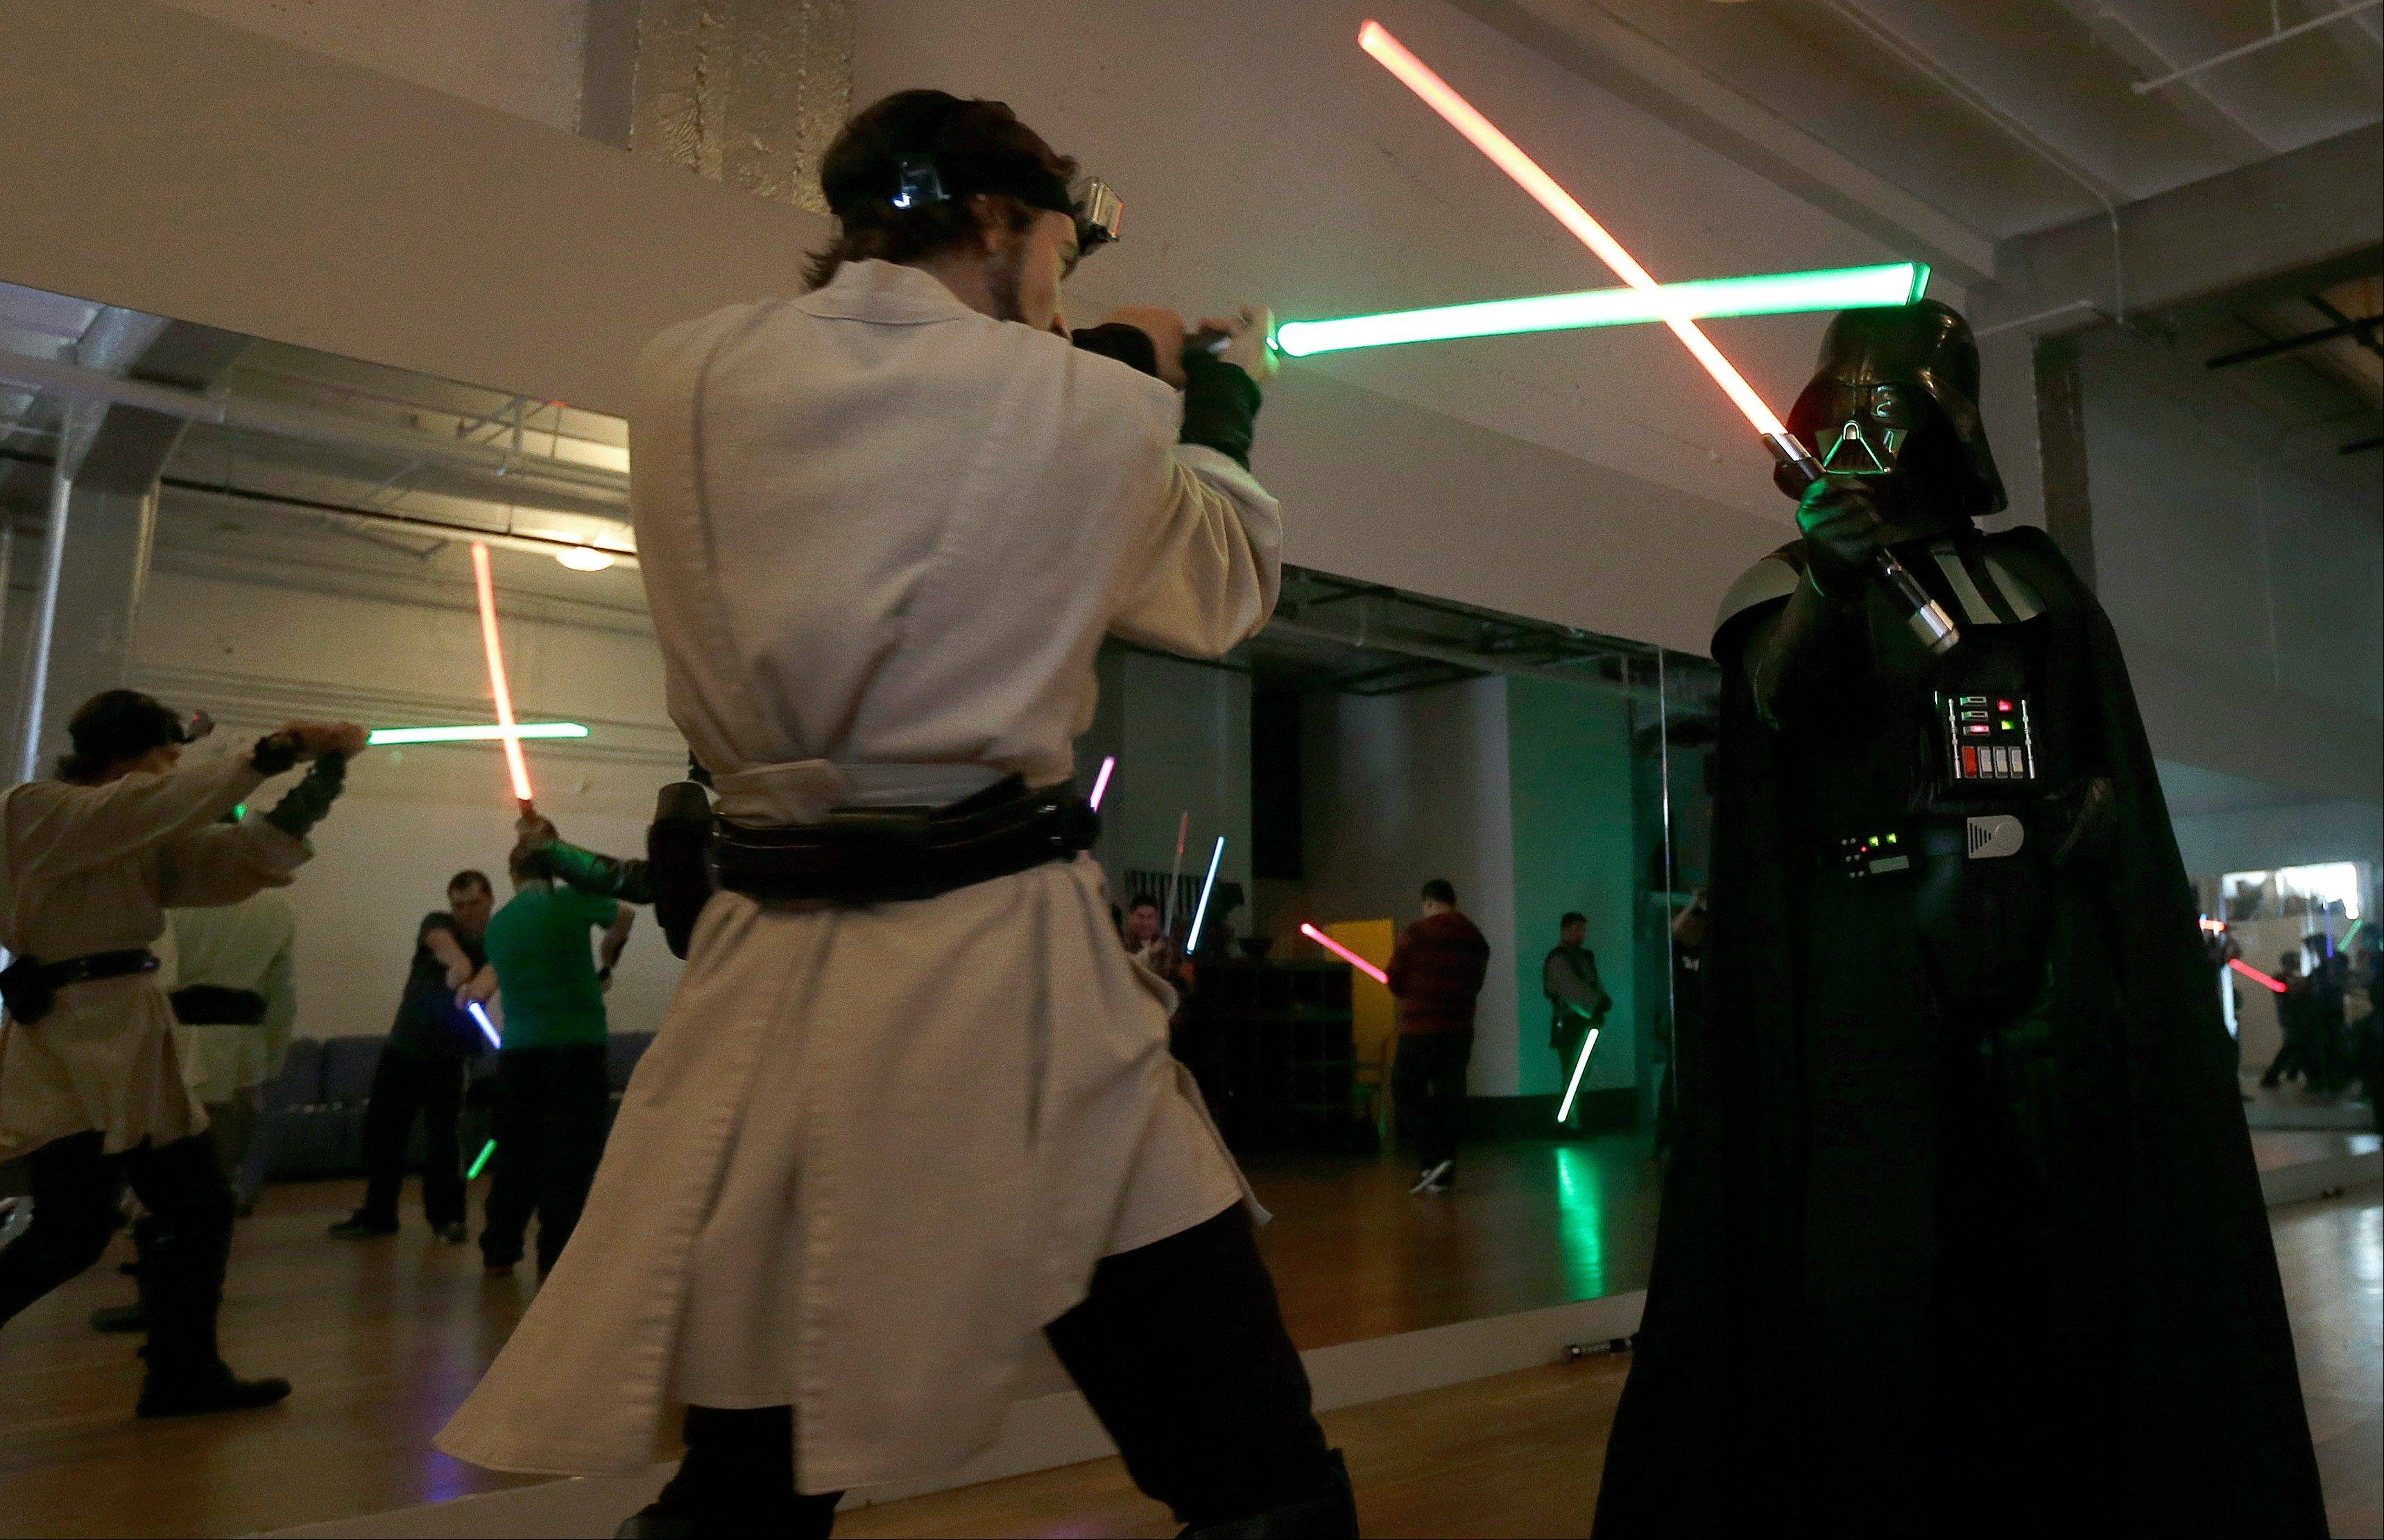 Golden Gate Knights instructor Alain Block, left, and Gary Ripper, dressed as Darth Vader, demonstrate light saber moves during class in San Francisco on Sunday.